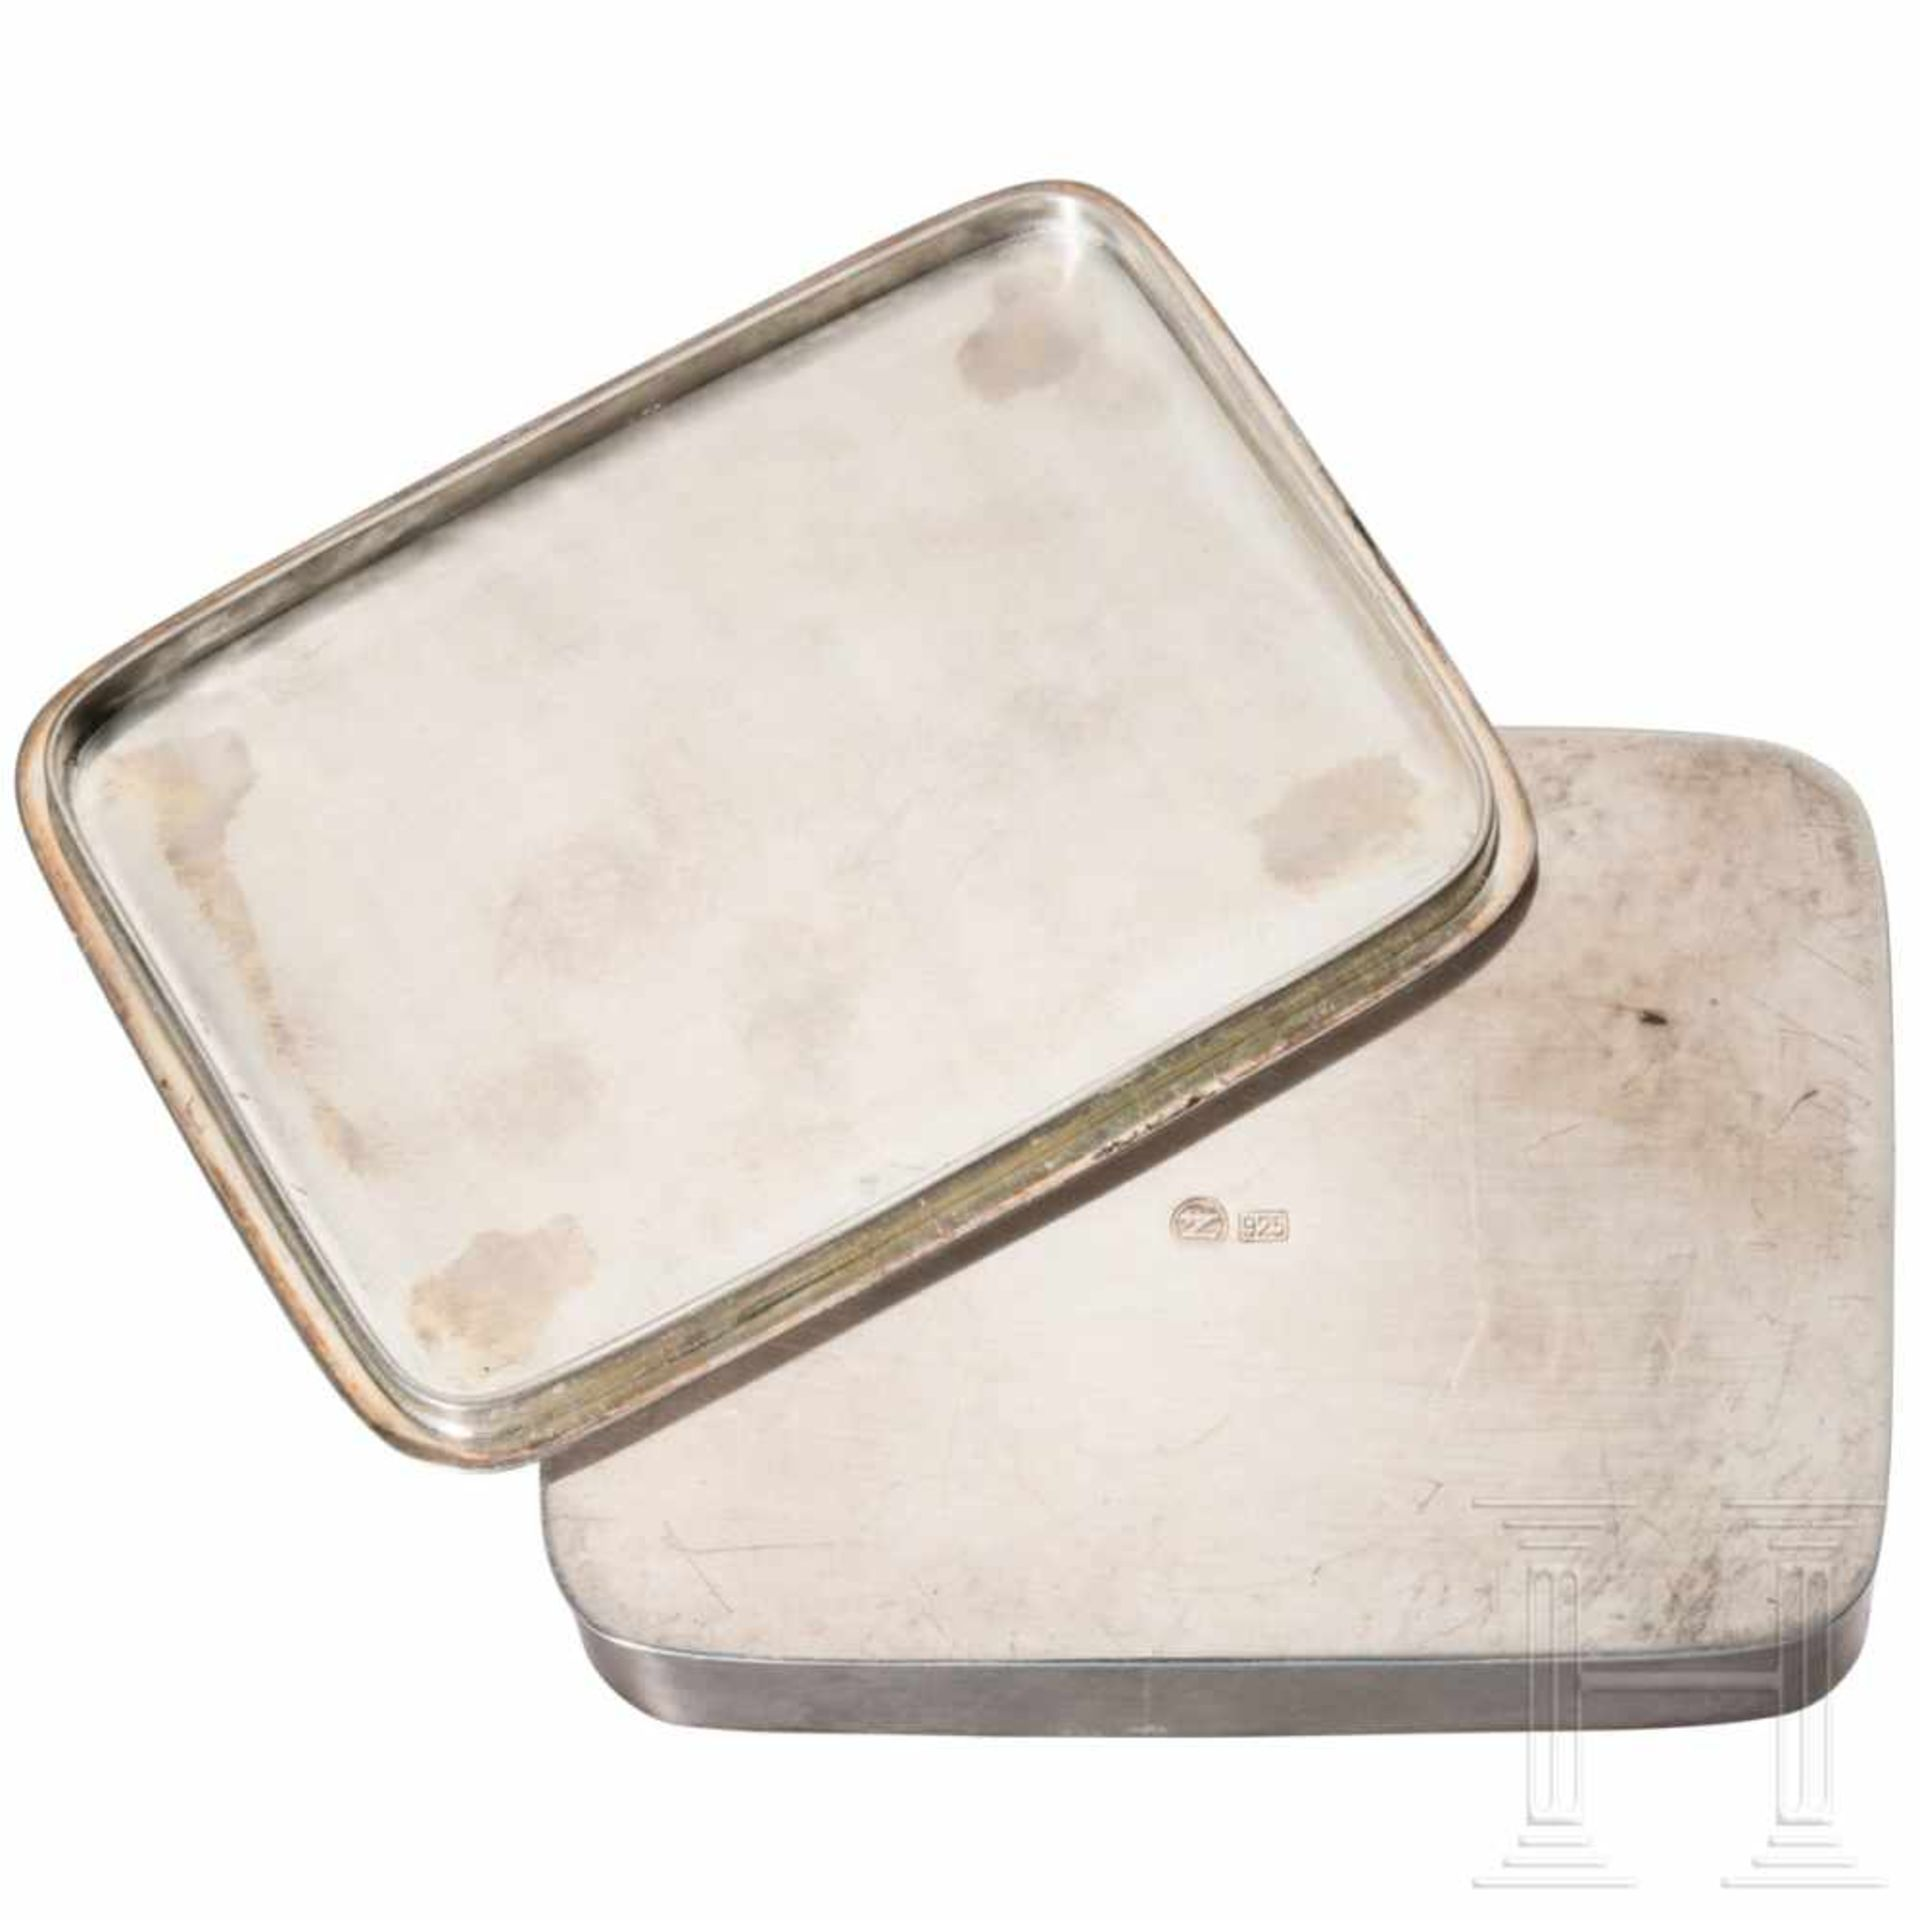 Los 6047 - Edda Göring - silver lidded box on the occasion of Eddas birth on 2 June 1938Silberne Deckeldose mit